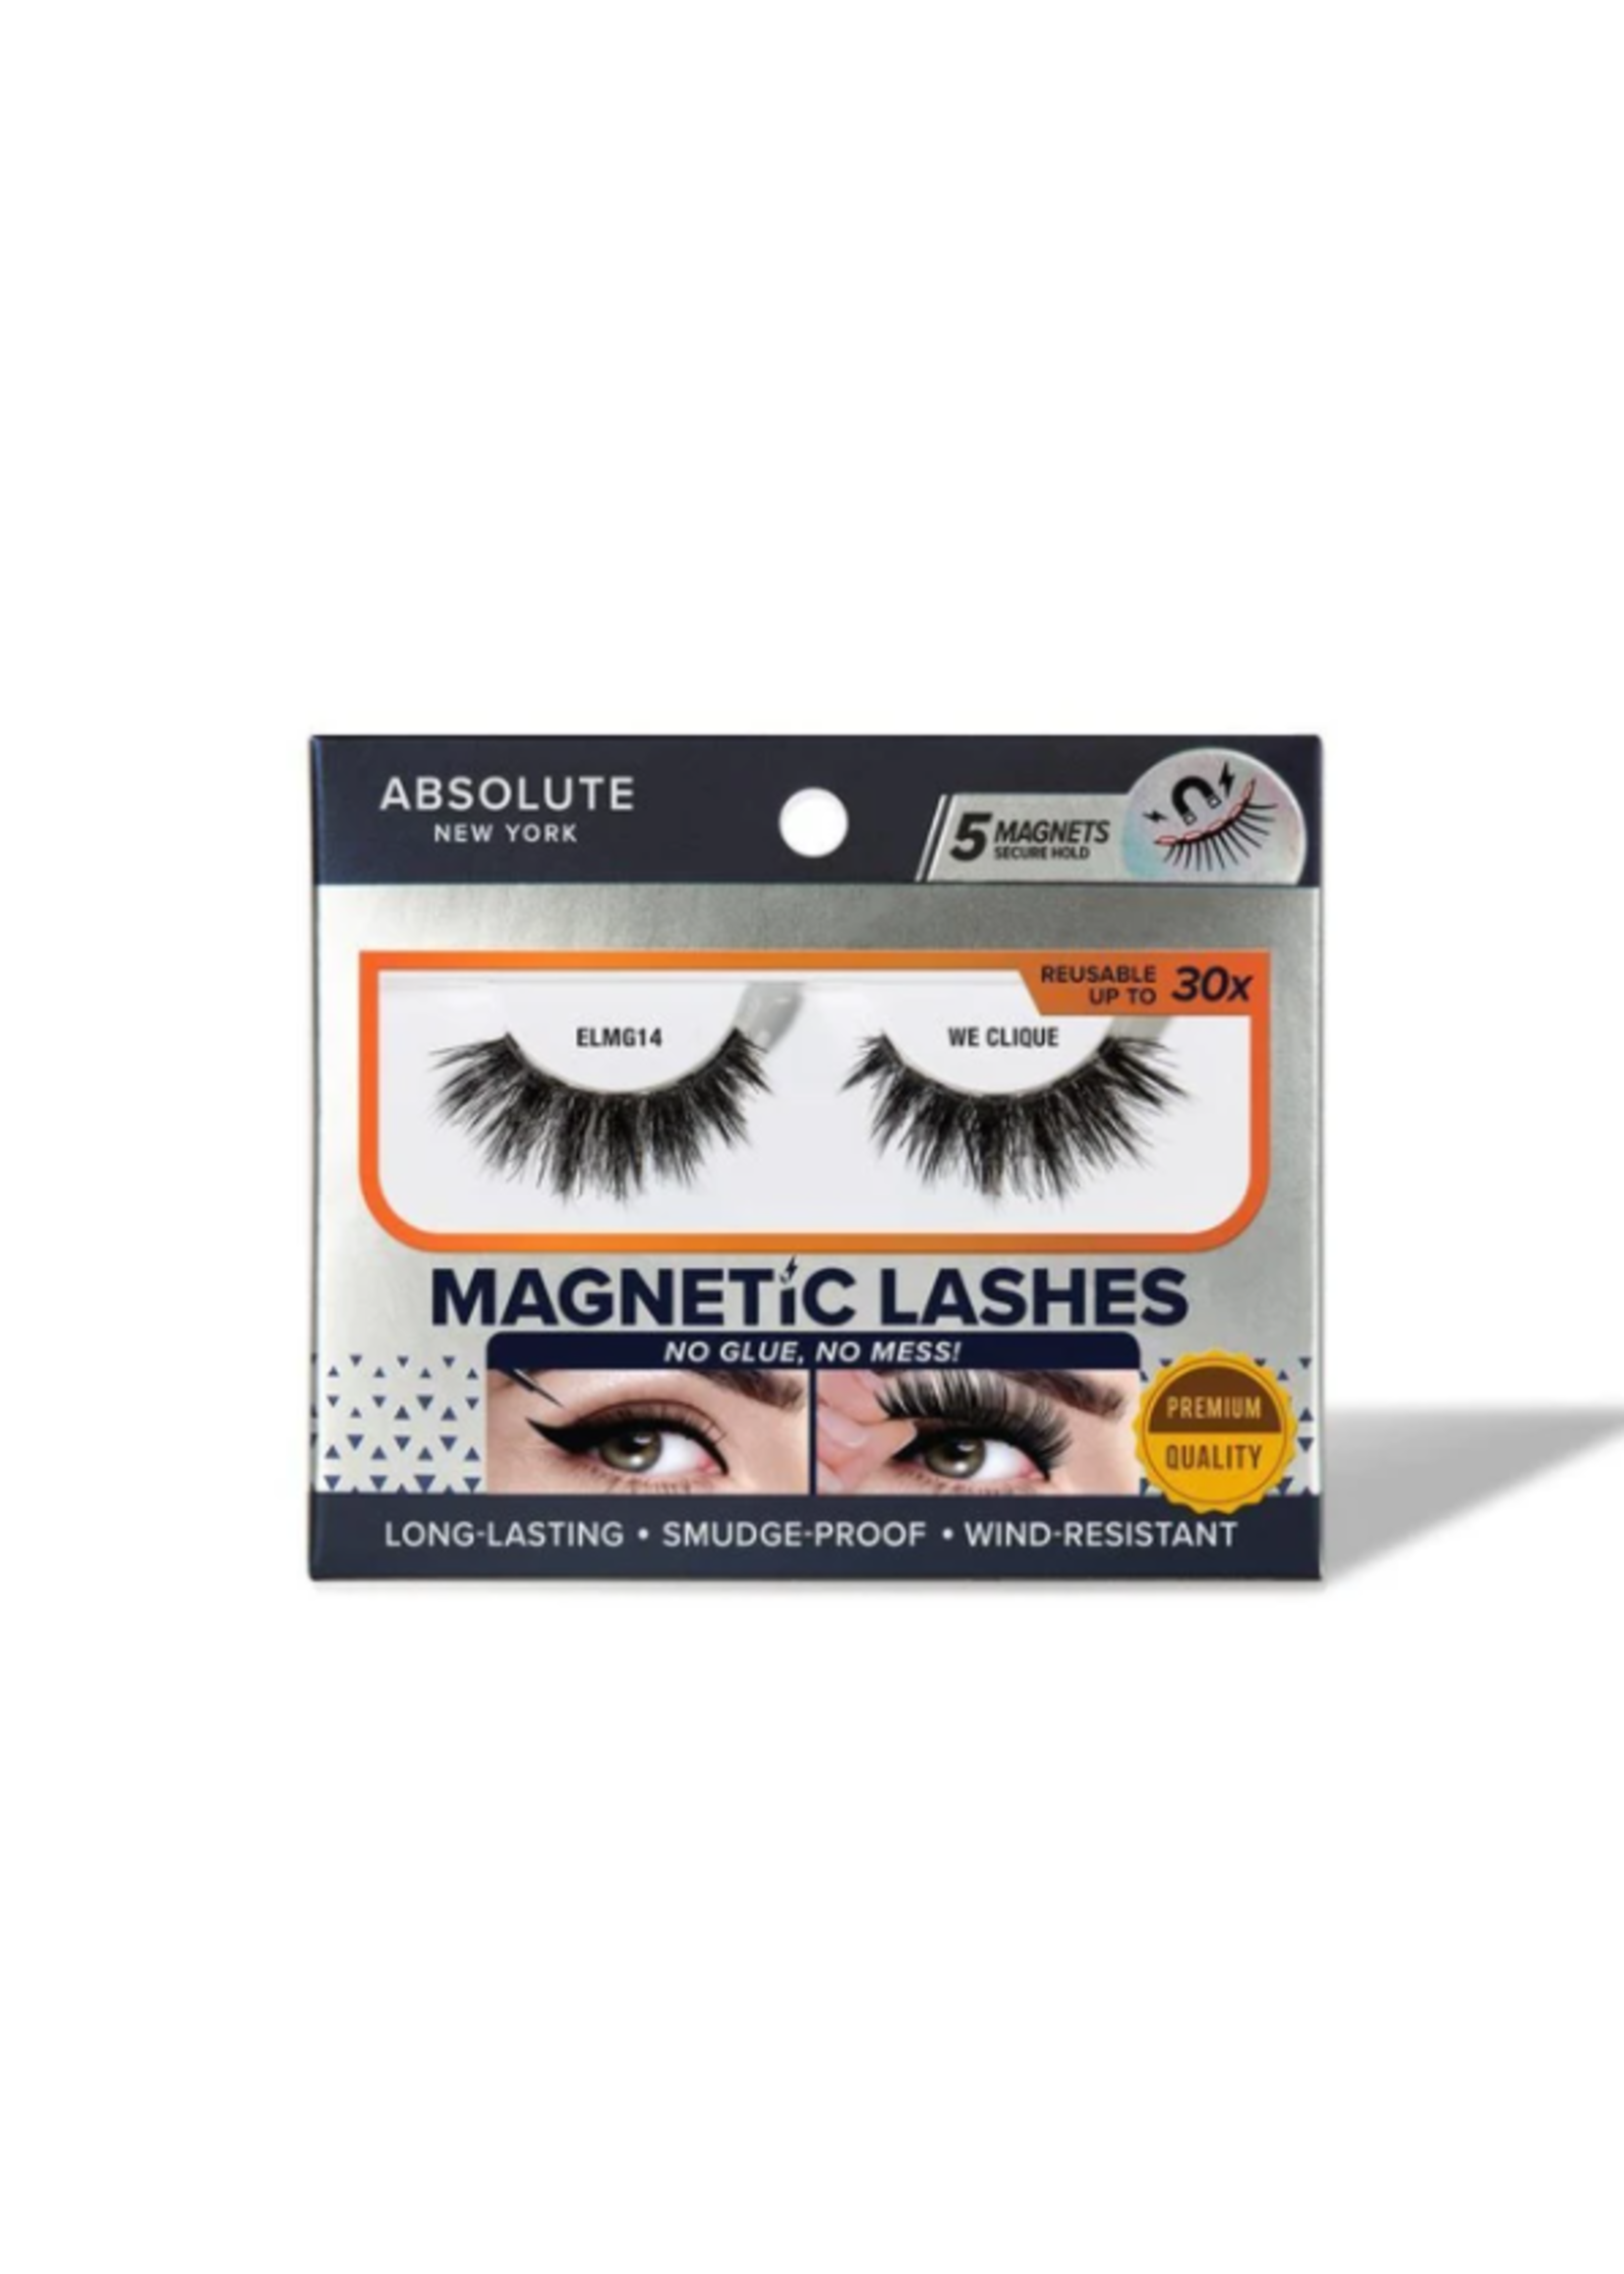 Absolute New York Magnetic Lashes